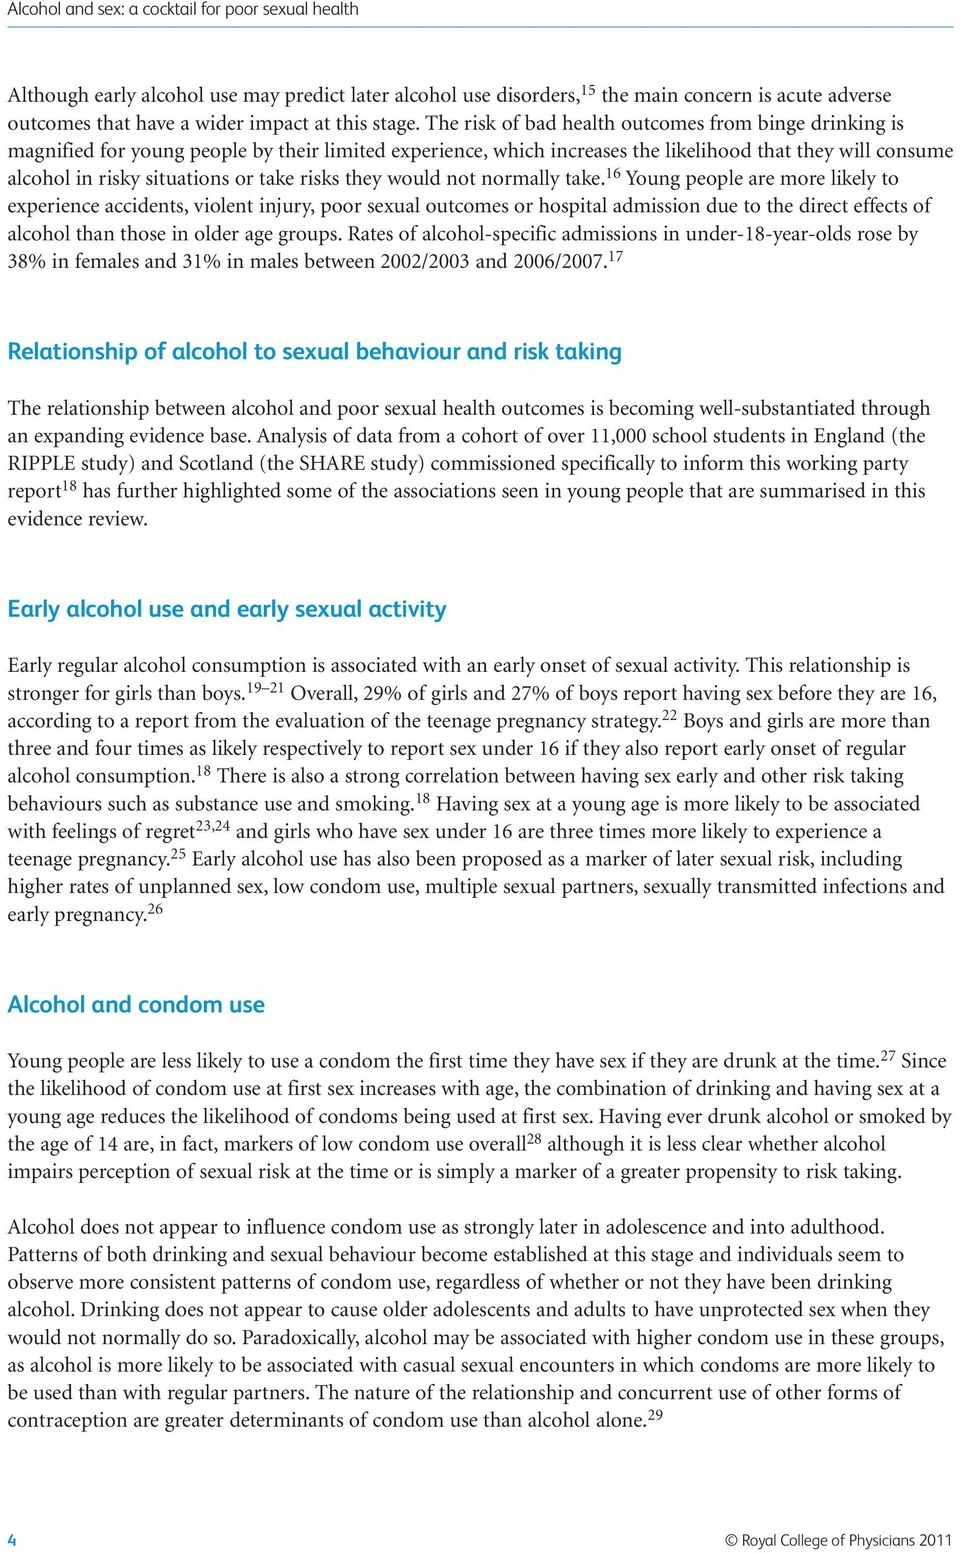 The risk of bad health outcomes from binge drinking is magnified for young people by their limited experience, which increases the likelihood that they will consume alcohol in risky situations or